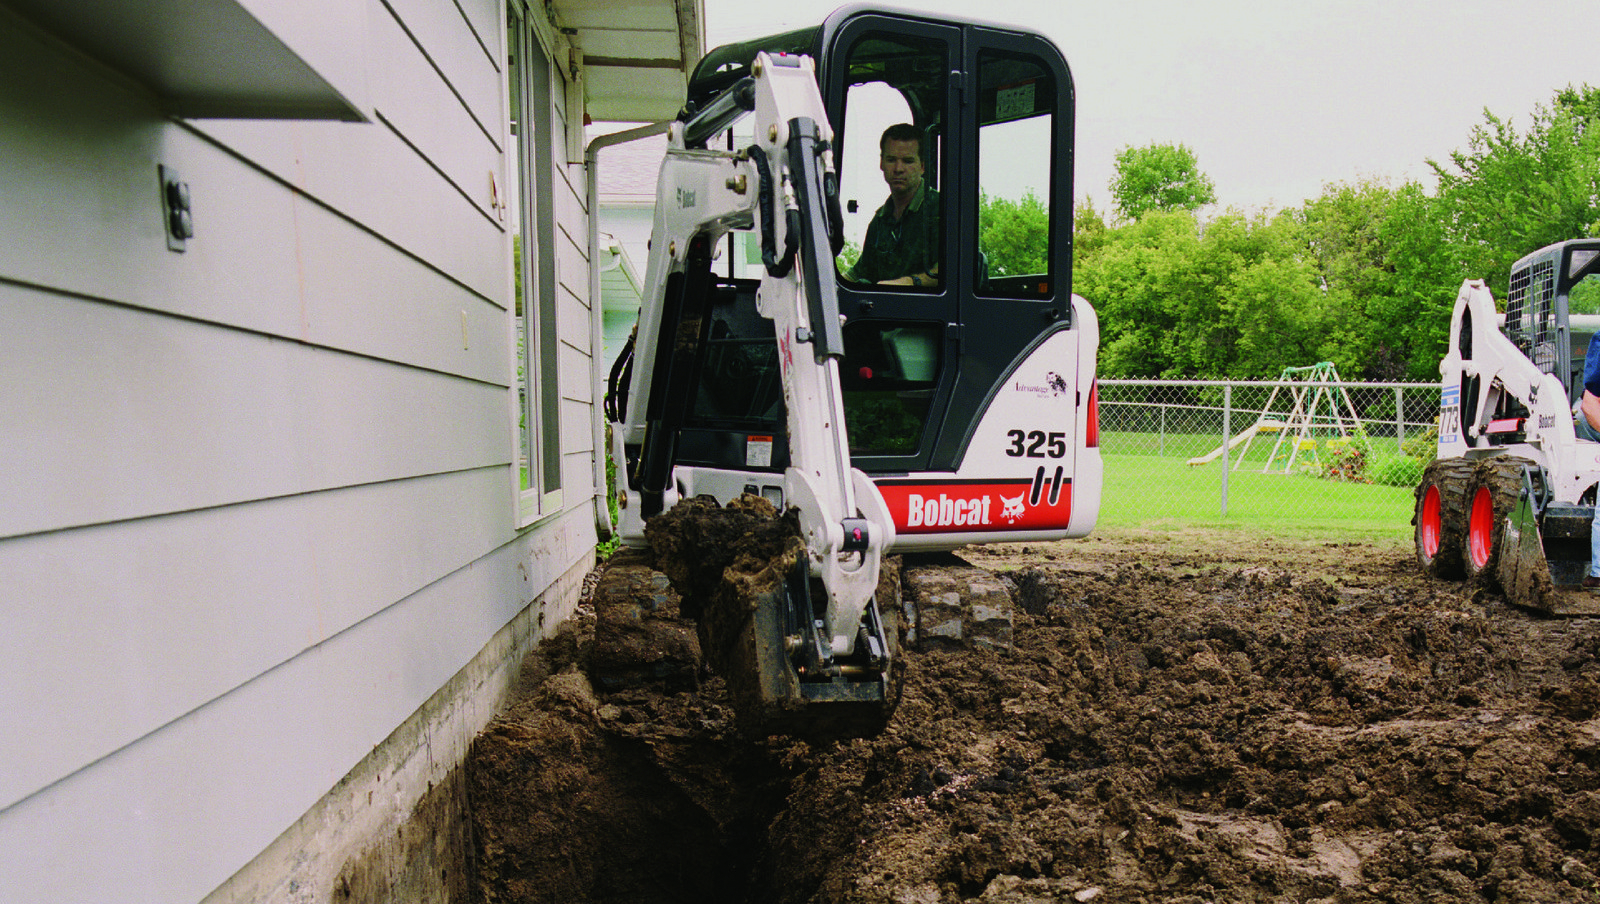 bobcat rental backhoe 325 all american do it best rentals